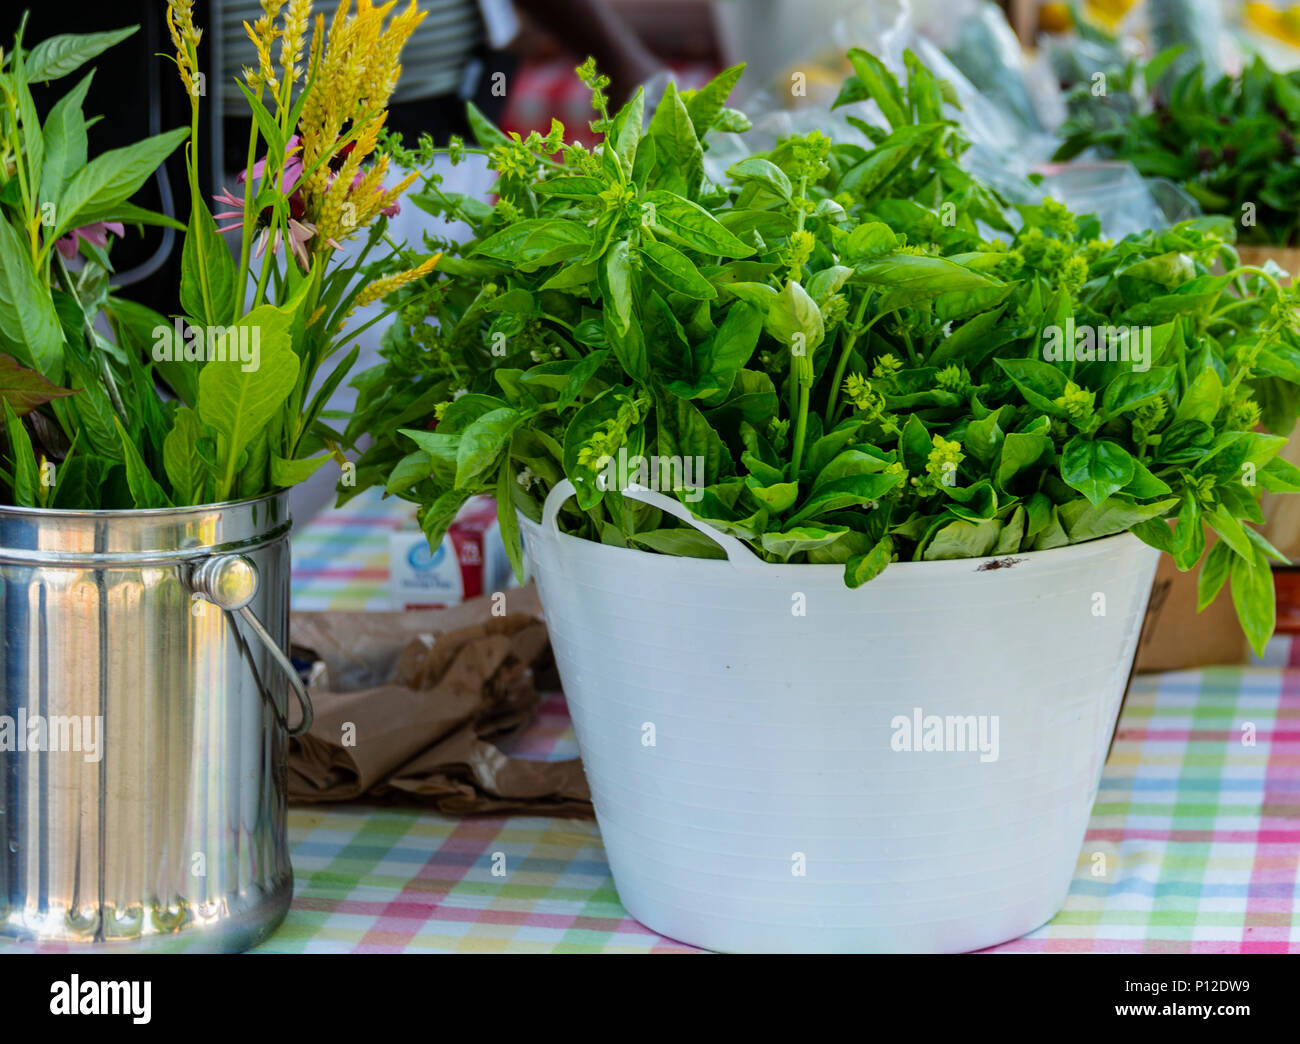 A fresh picked bowl of organically grown basil for sale at a local farmers market - Stock Image